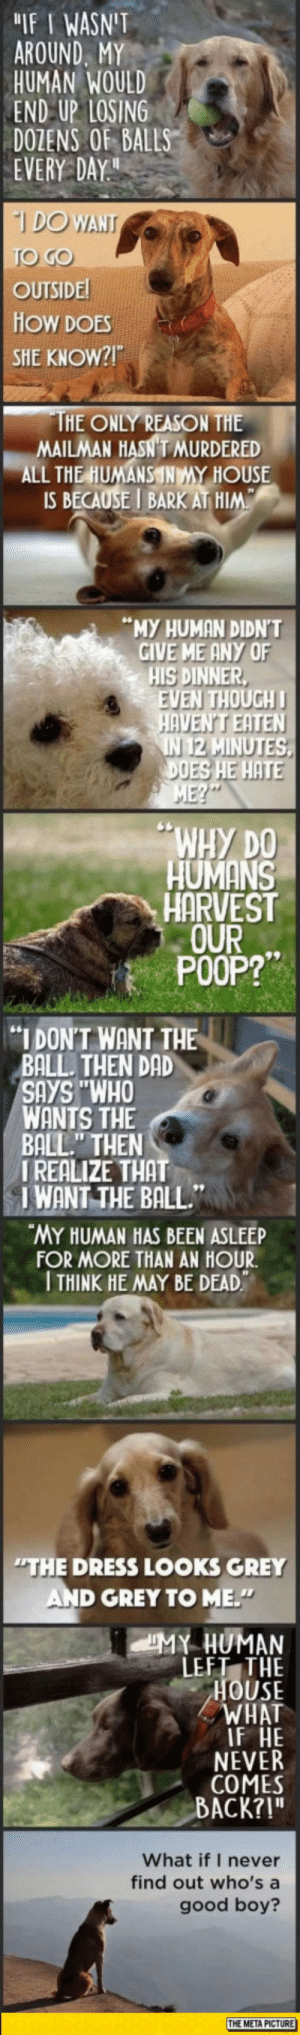 "srsfunny:The World From A Dog's Perspective: IF I WASNIT  AROUND. MY  HUMAN WOULD  END UP LOSING  DOZENS OF BALLS  EVERY DAY  DO WT  OUTSIDE  HOW DOES  SHE KNOW?!  HE ONLY REASON THE  MAILMAN HASN T MURDERED  ALL THE HUMANSNMY HOUSE  IS BECAUSE I BARK AT HIM  ""MY HUMAN DIDN'T  GIVE ME ANY OF  HIS DINNER  VEN THOUGH  AVEN'T EATEN  2 MINUTES  ES HE HATE  N 1  WHy DO  HUMANS  HARVEST  OURー  POOP?  ""I DONT WANT THE  BALL. THEN DAD  SAYS ""WHO  WANTS THE  BALL"" THEN  IREALIZE THAT  IWANT THE BALL""  MY HUMAN HAS BEEN ASLEEP  FOR MORE THAN AN HOUR  THINK HE MAY BE DEAD  THE DRESS LOOKS GREY  AND GREY TO ME.  LEFT THE  HOUSE  WHAT  F HE  NEVER  COMES  ACK?!""  What if I never  find out who's a  good boy?  THE META PICTURE srsfunny:The World From A Dog's Perspective"